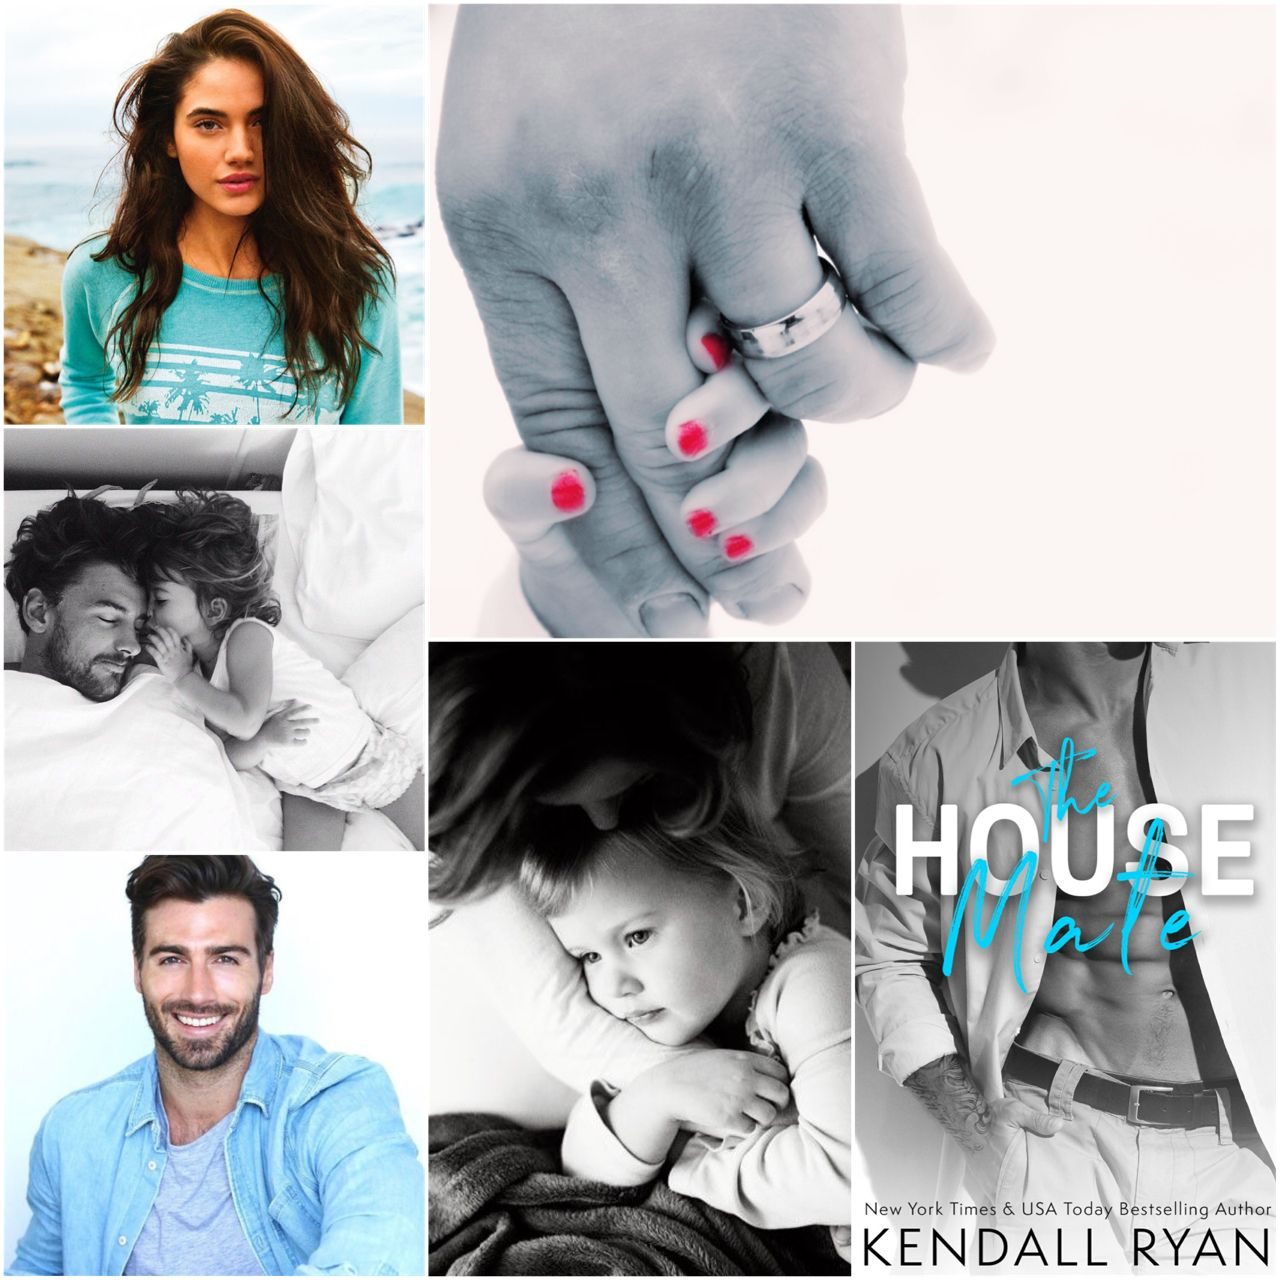 Kendall Ryan Libros The House Mate By Kendall Ryan Book Quotes Teasers